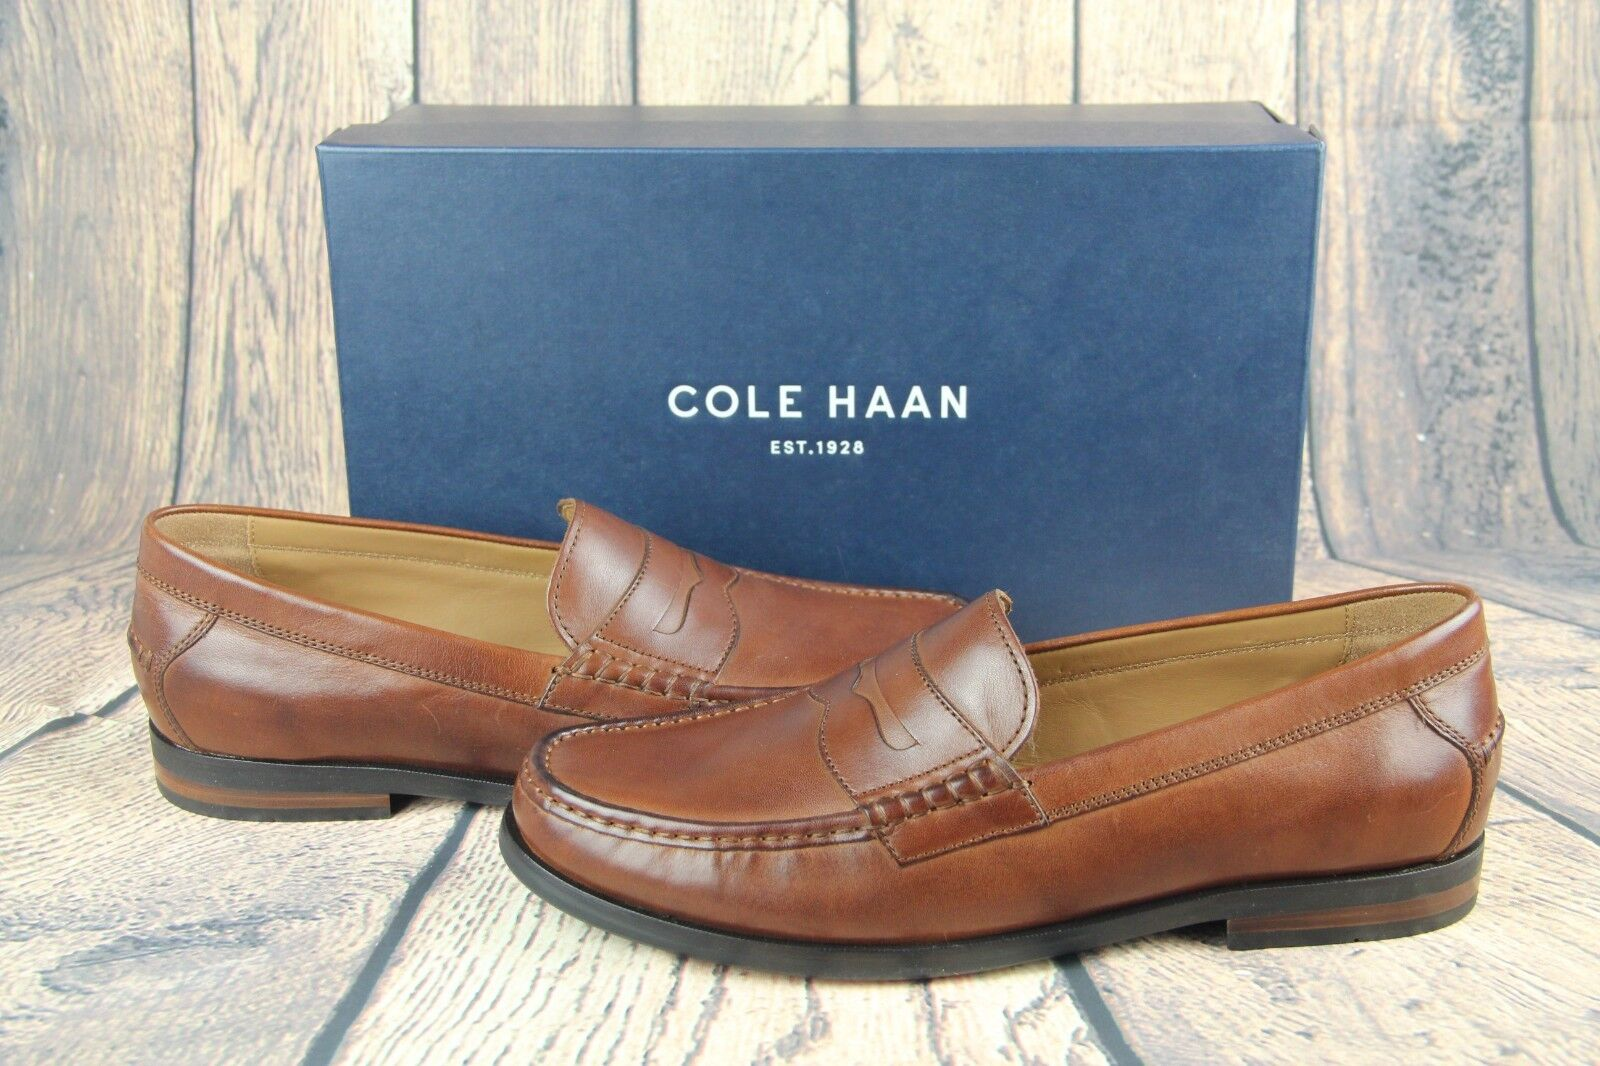 COLE HAAN PINCH FRIDAY NEW CONTEMPORARY Woodbury Handstain C23845 SZ NEW FRIDAY 324543